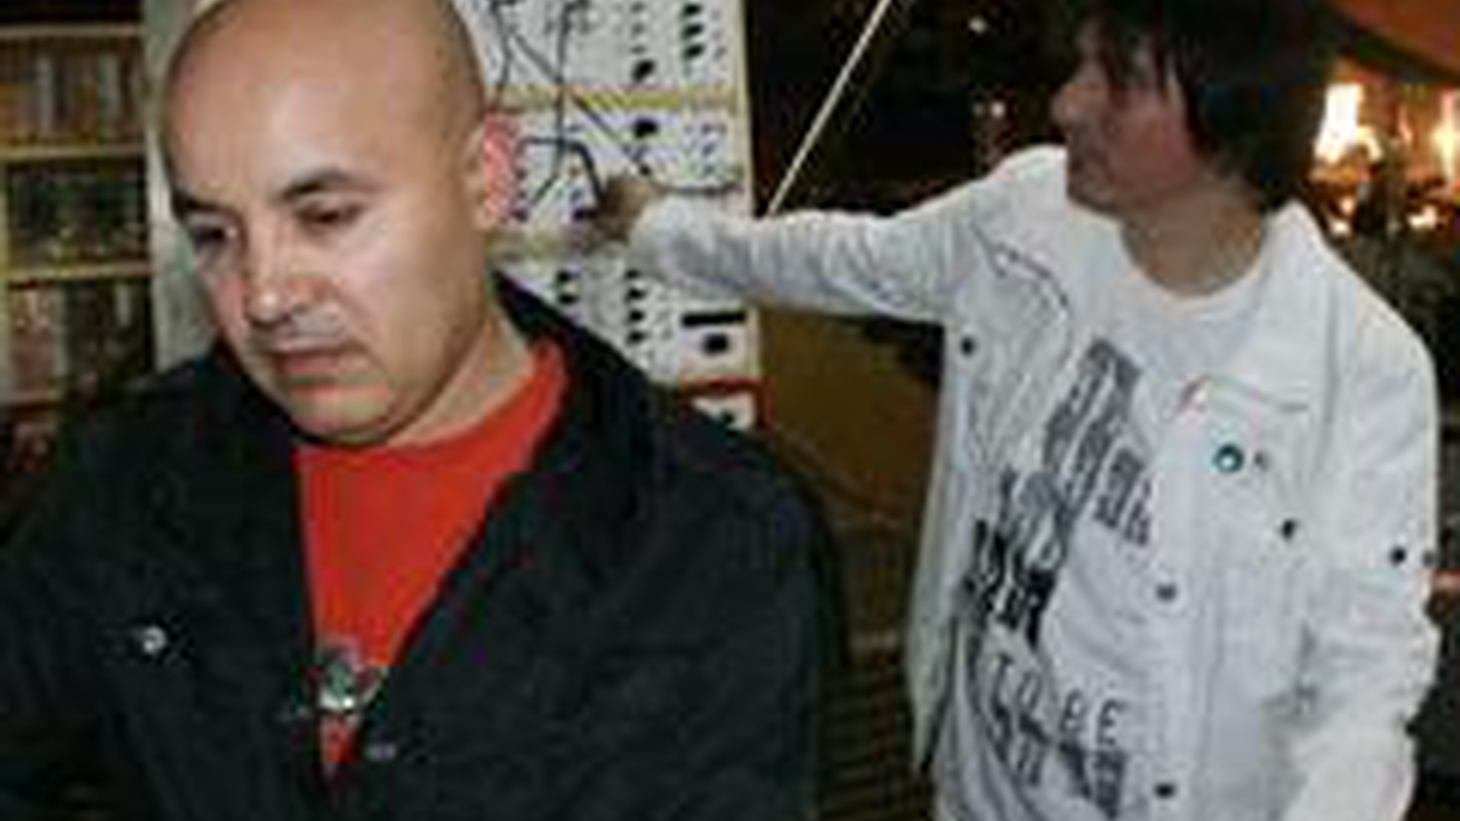 Nortec Collective members, Bostich and Fussible, mix the sounds of Tijuana on Morning Becomes Eclectic at 11:15am.